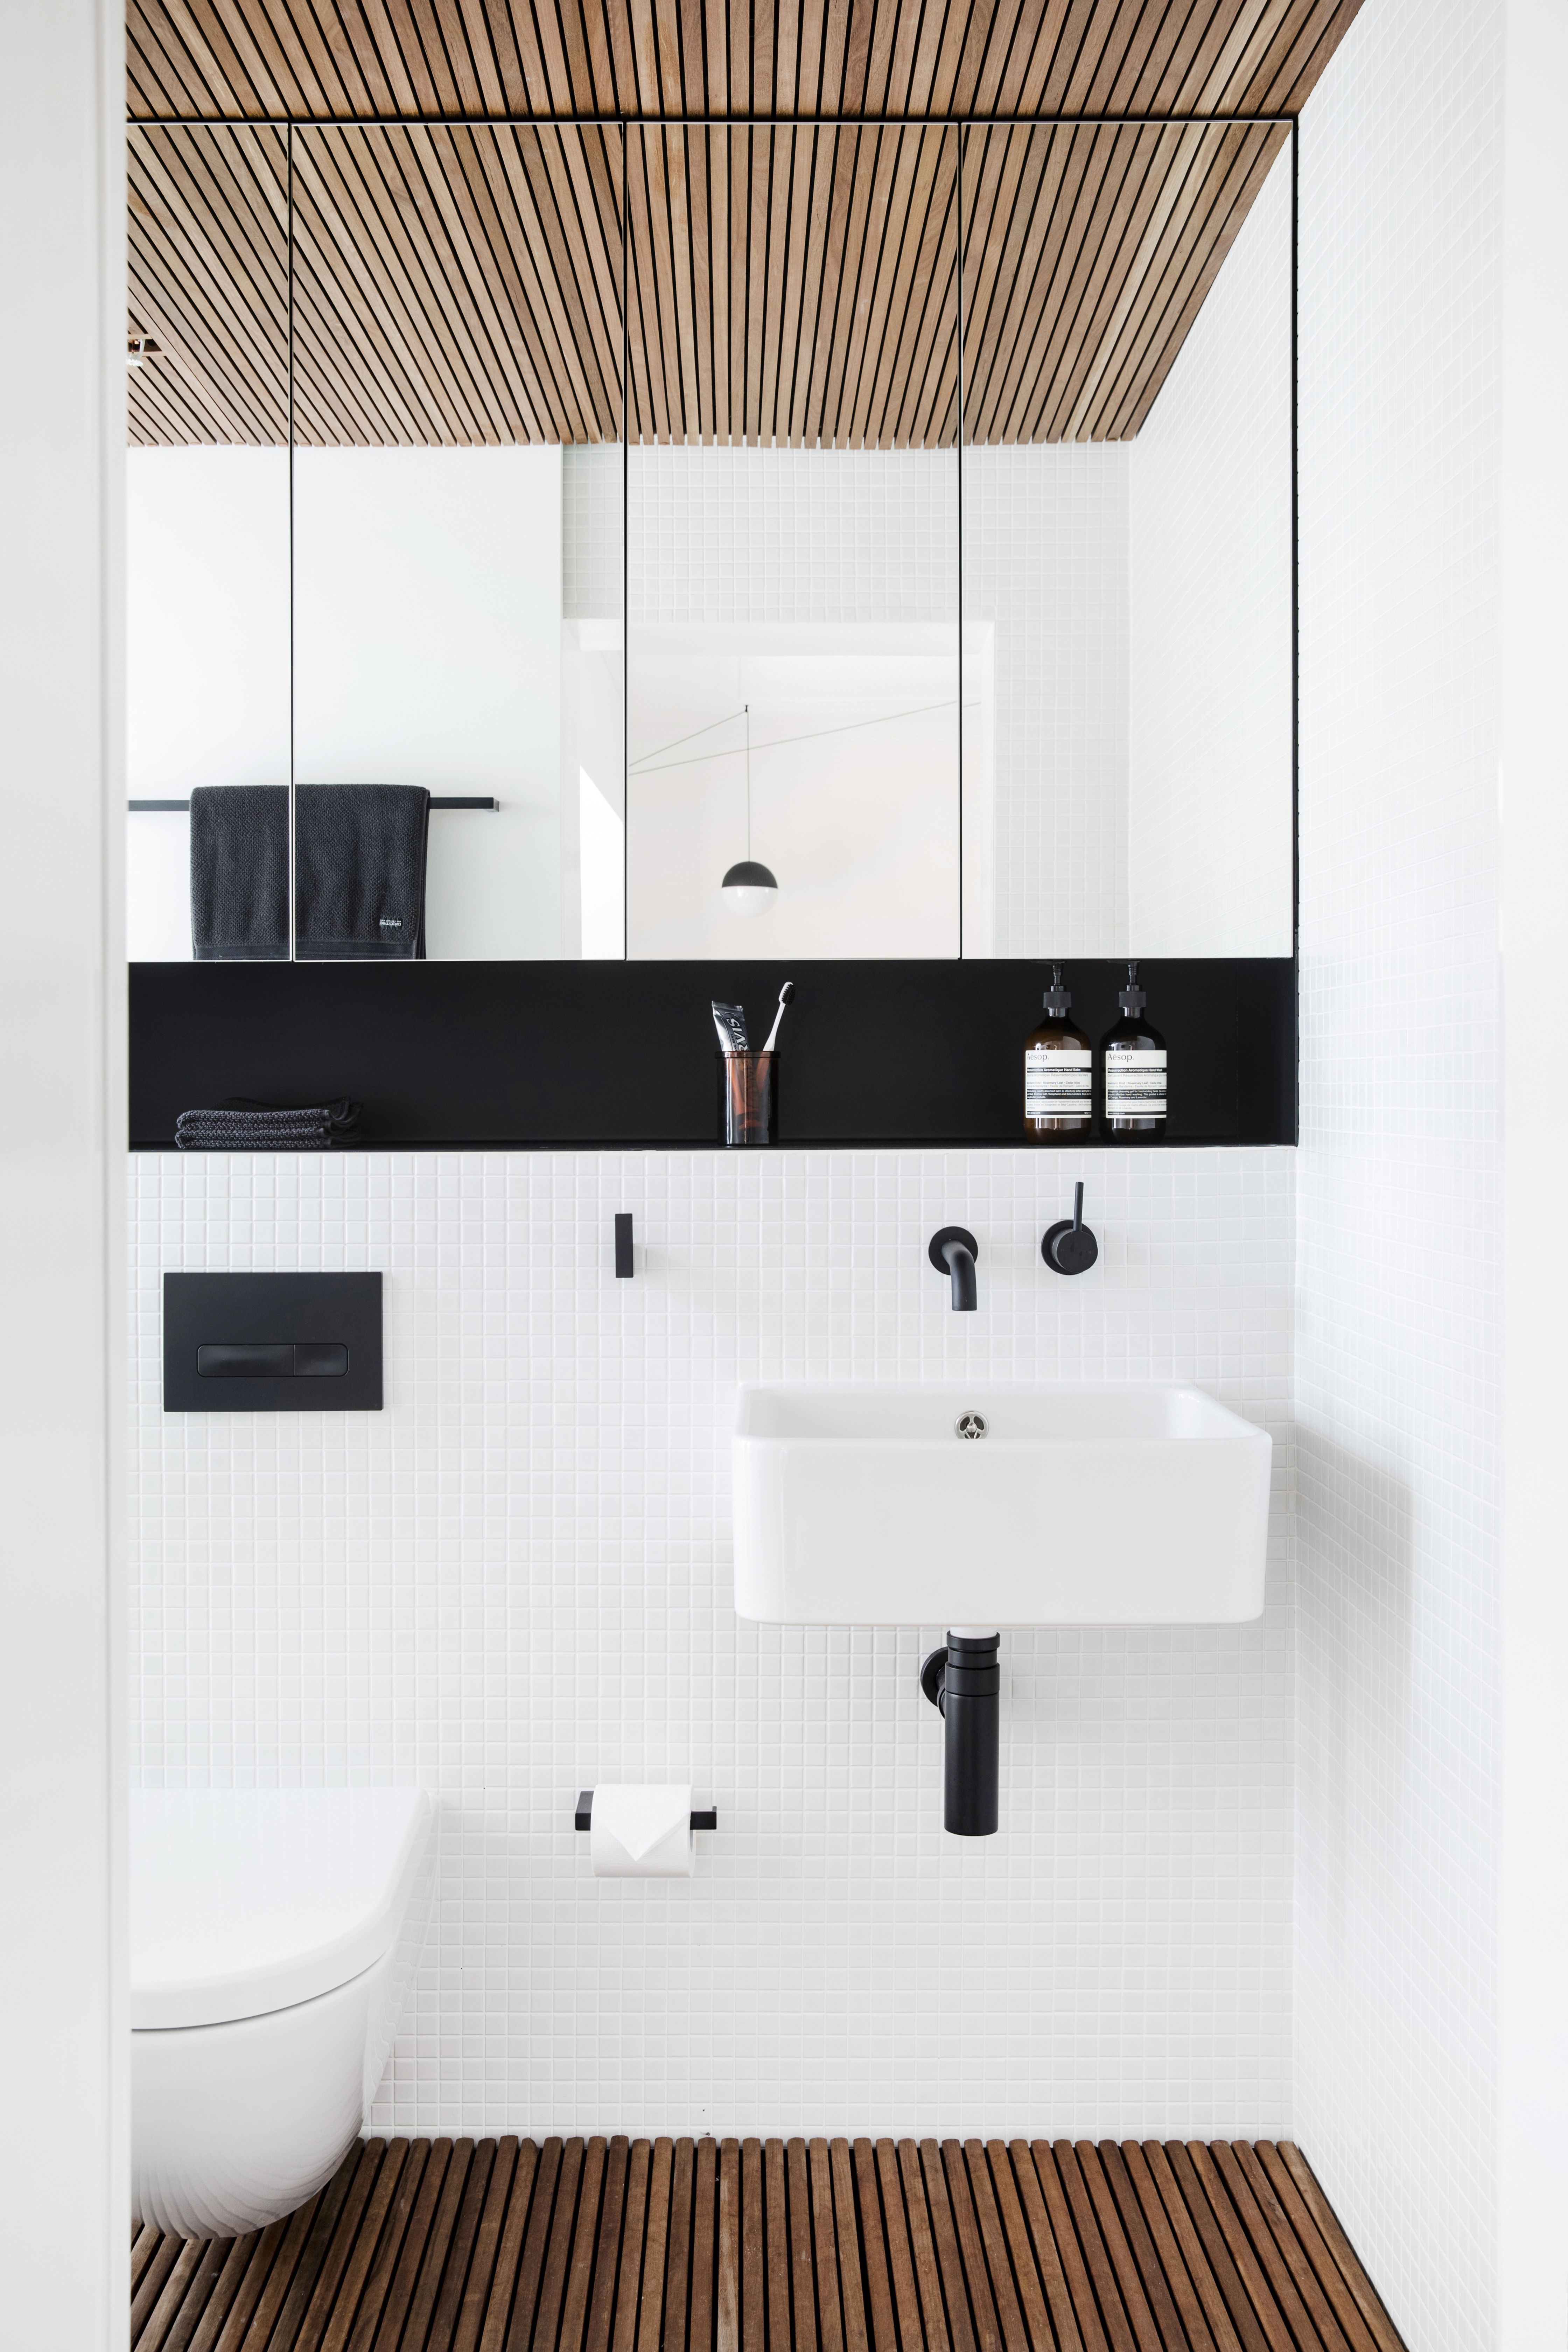 Nano Pad by Leibal | South wales, Modern and Interiors